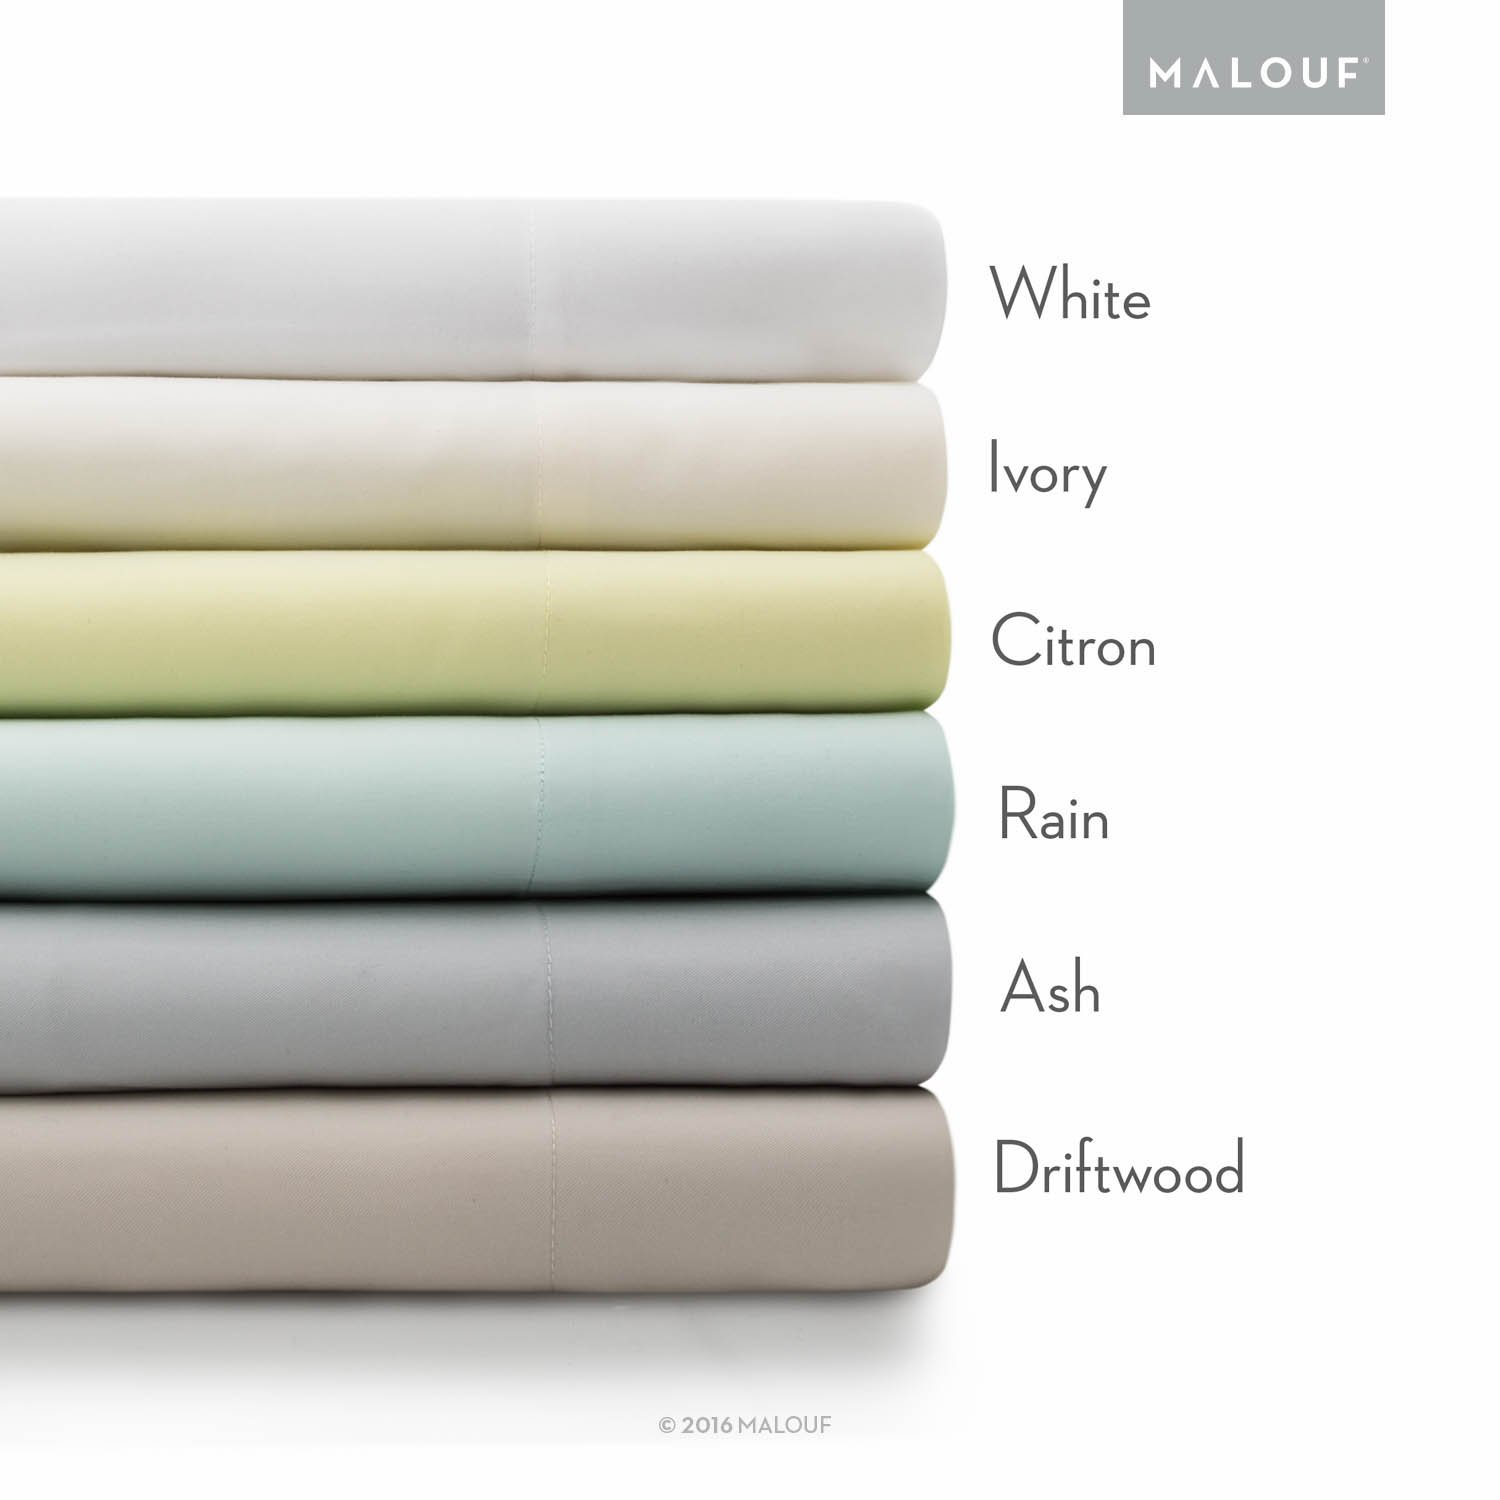 MALOUF Split Head 100% Rayon From Bamboo Sheet Set - 4-pc Set - Queen - Driftwood by MALOUF (Image #4)